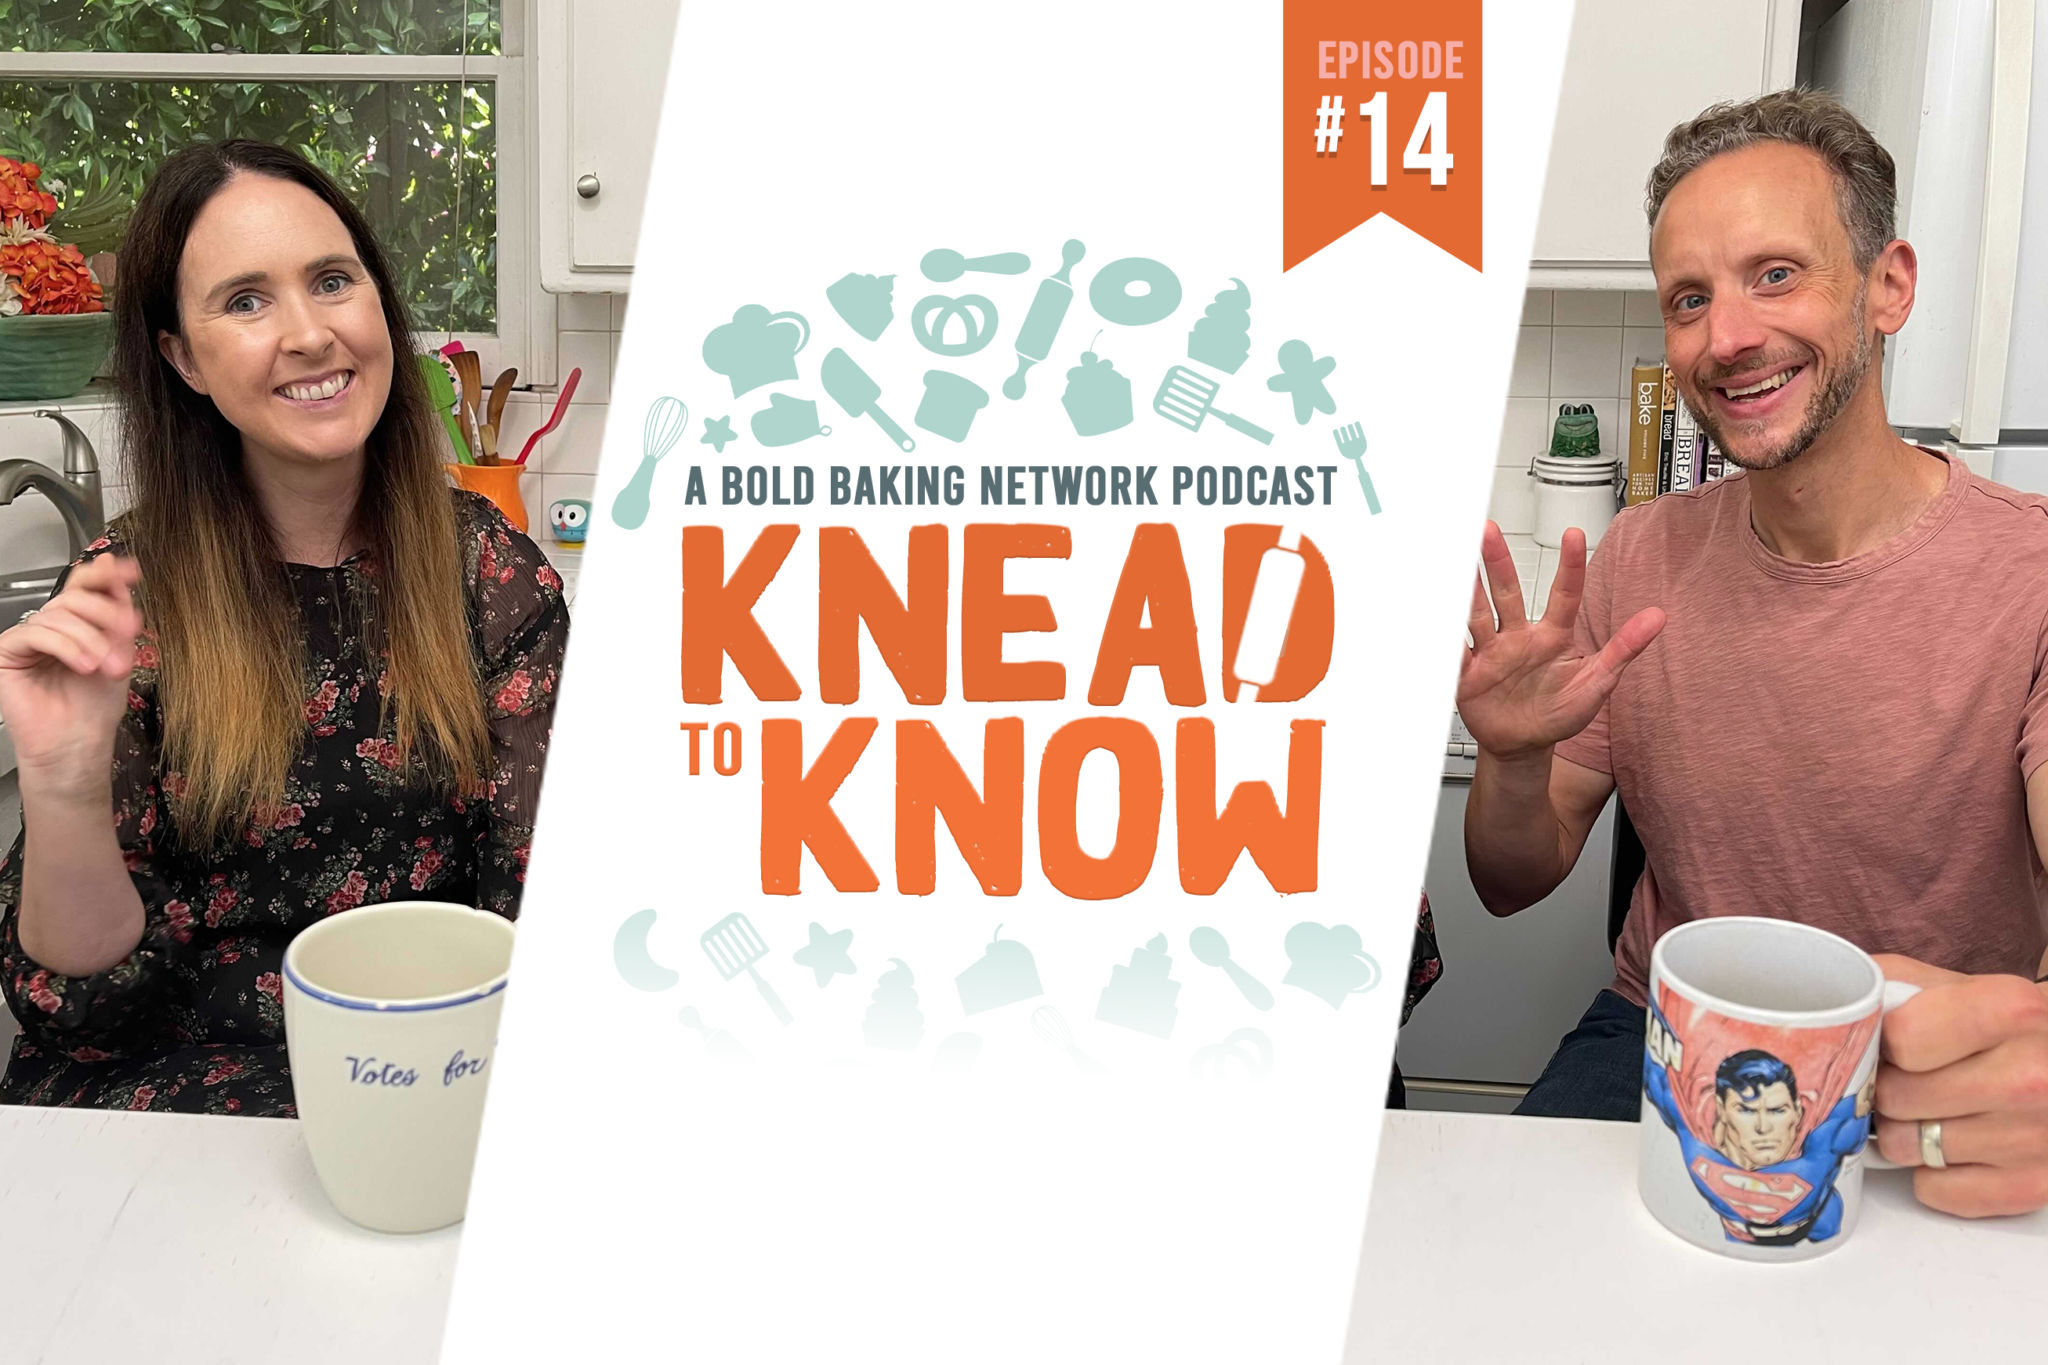 Knead to Know #14 with Kevin and Gemma